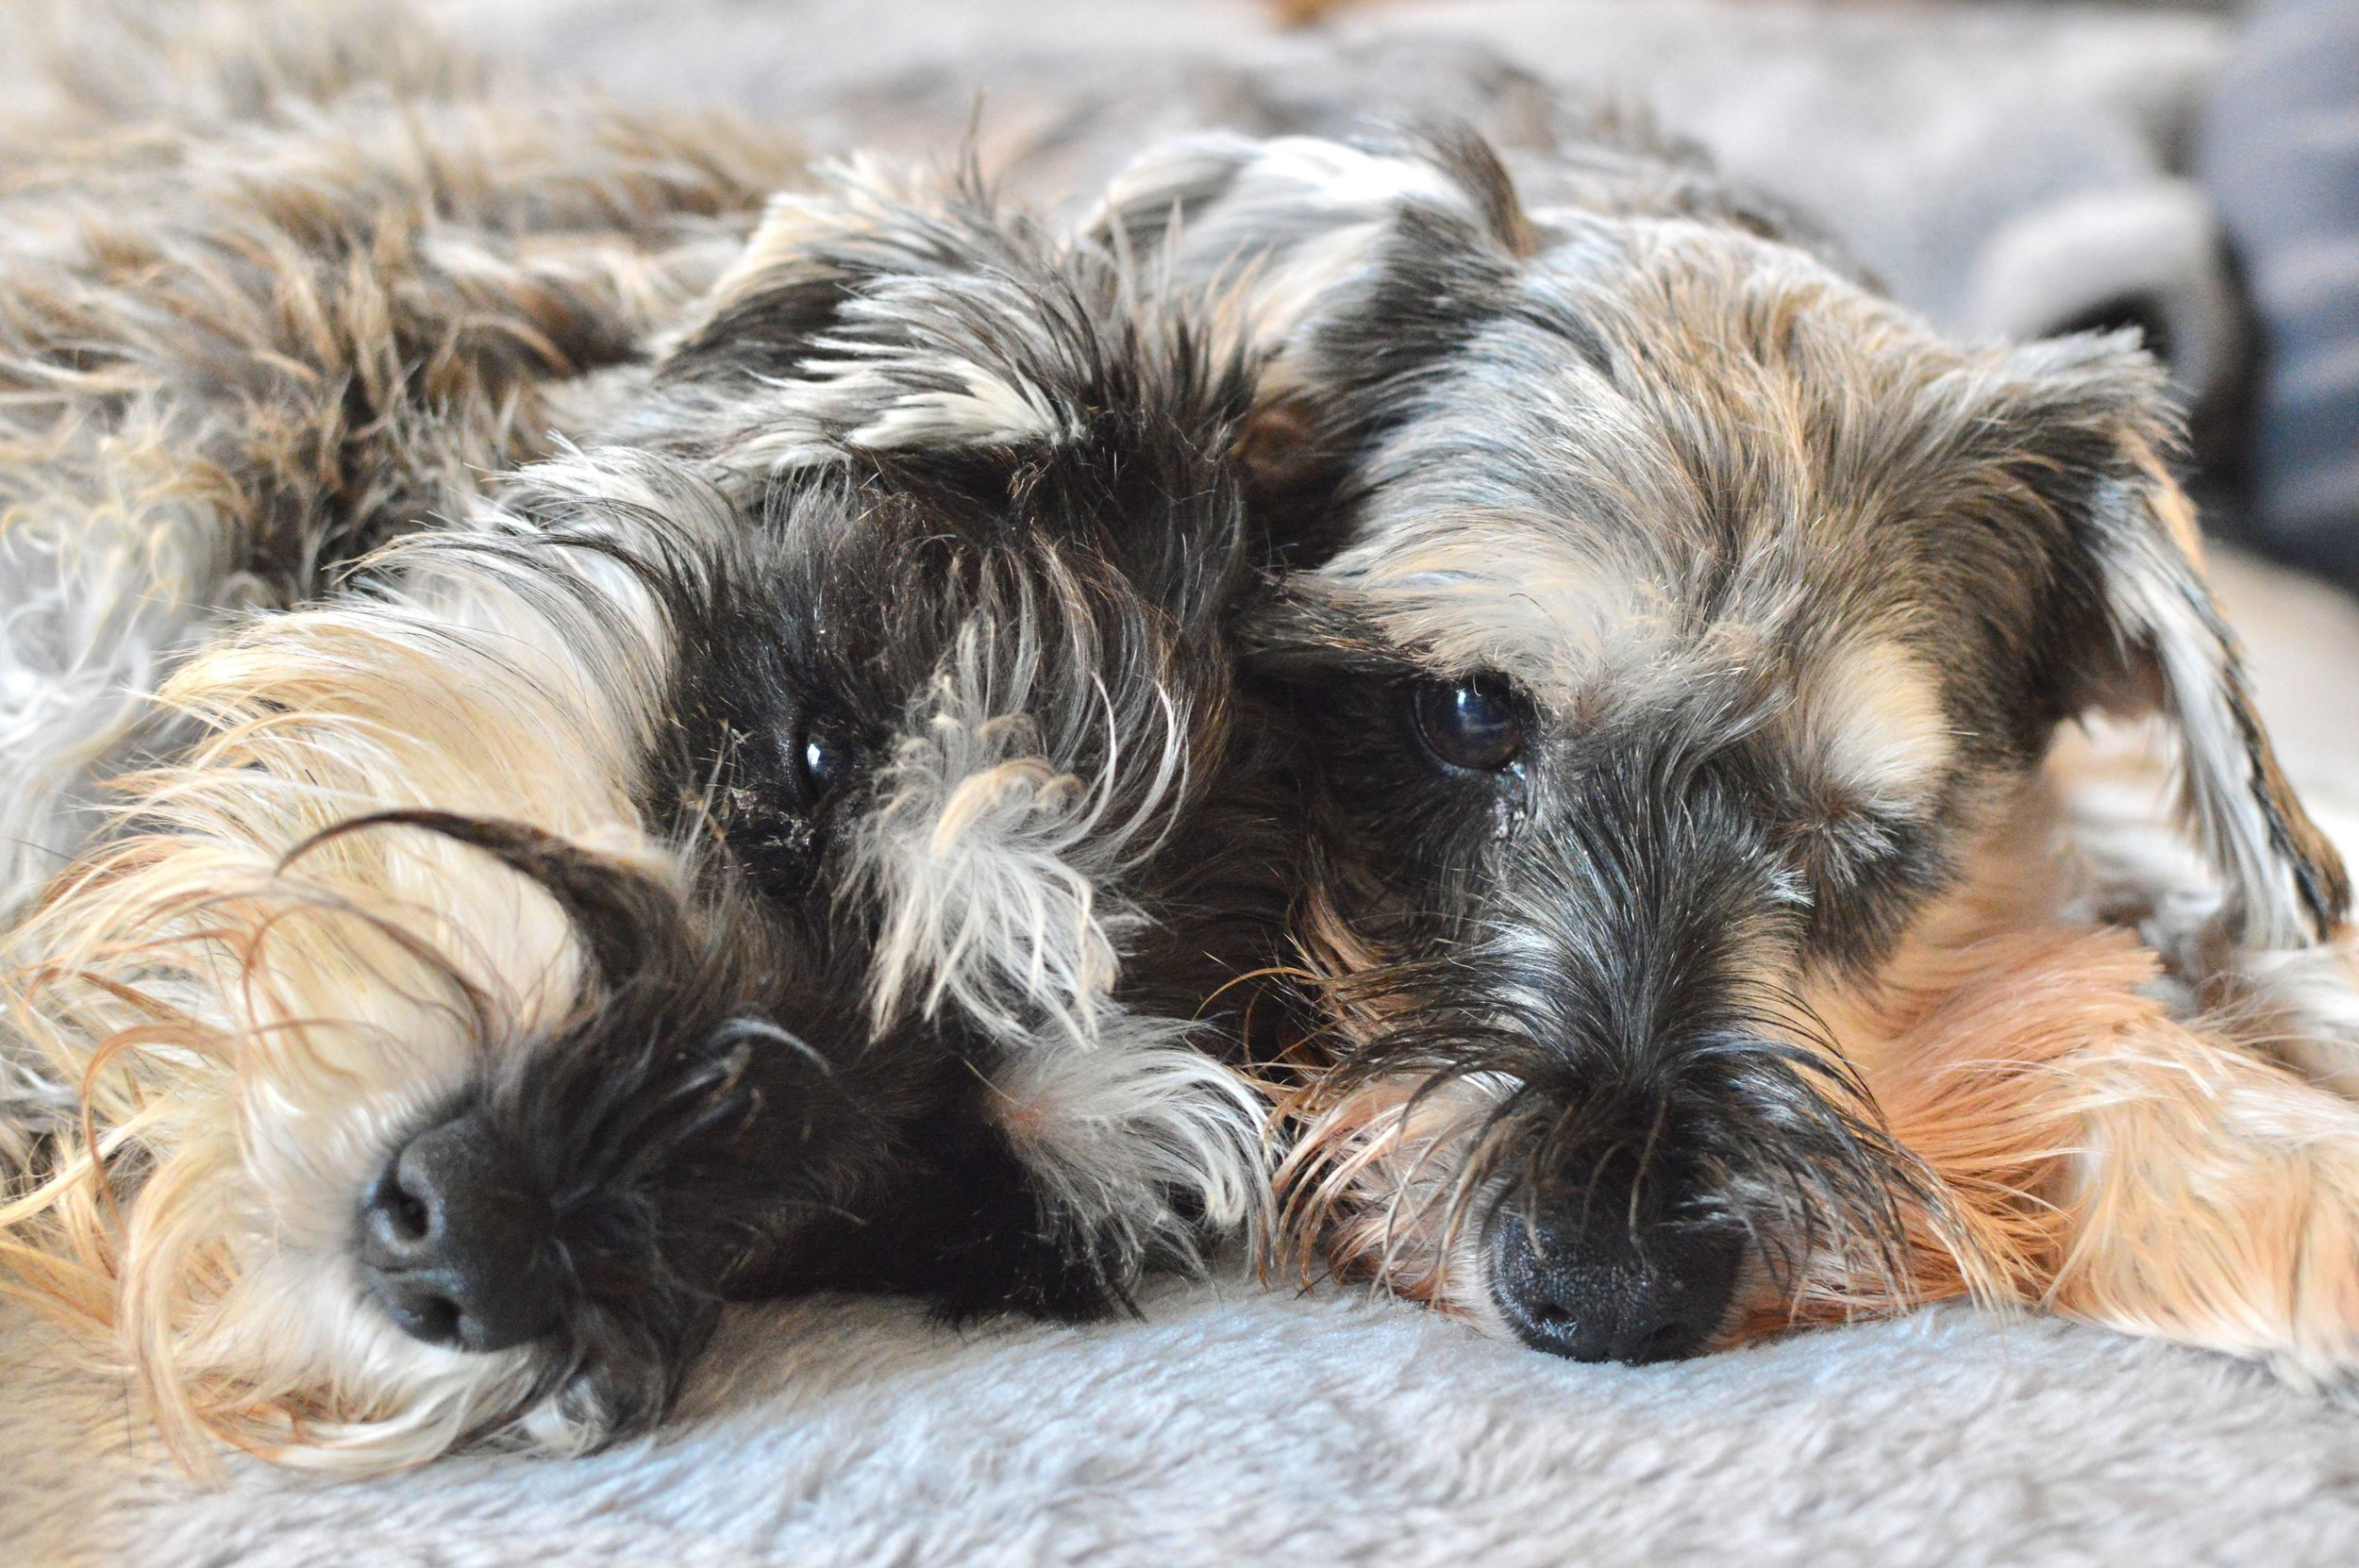 Violet and Gertie, both helped on their way to a new and wonderful life by Schnauzerfest donations